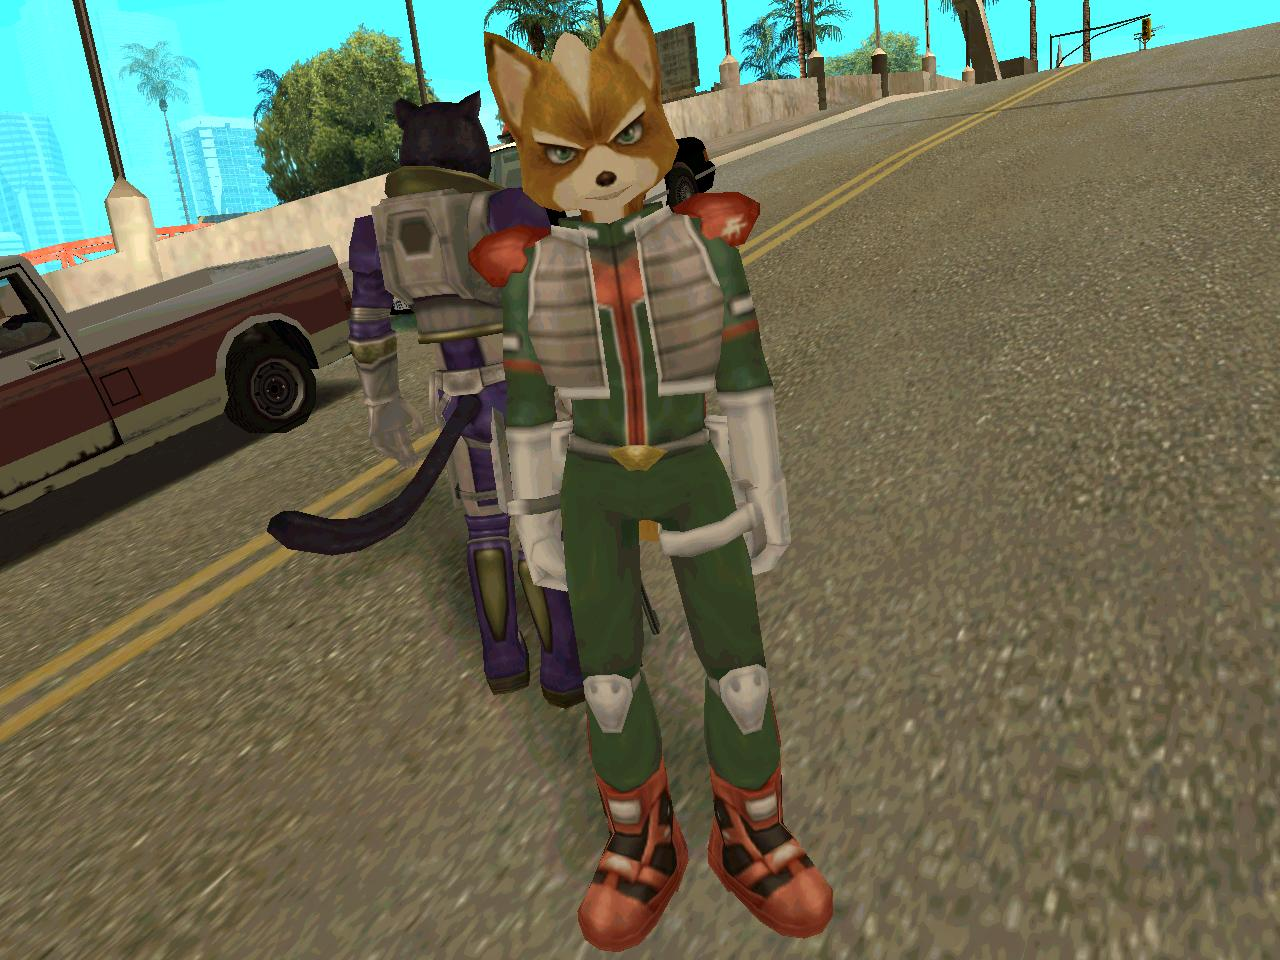 gta san andreas images star fox mods hd wallpaper and background